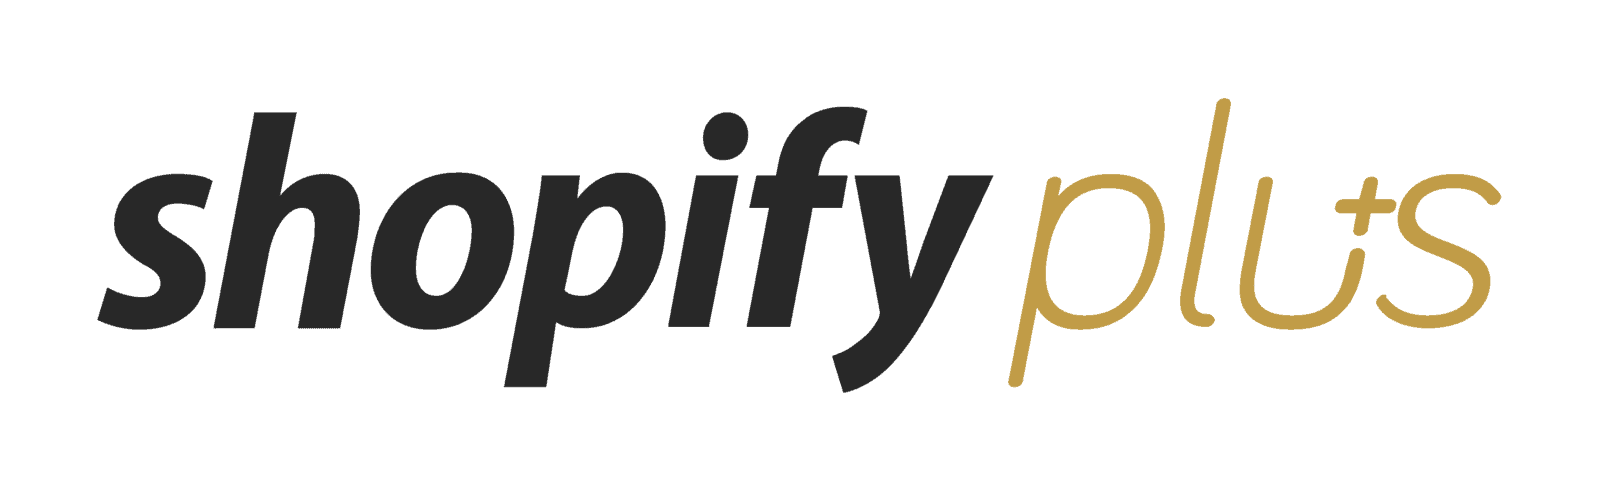 Parceiro Shopify Plus no Brasil - Agencia FY